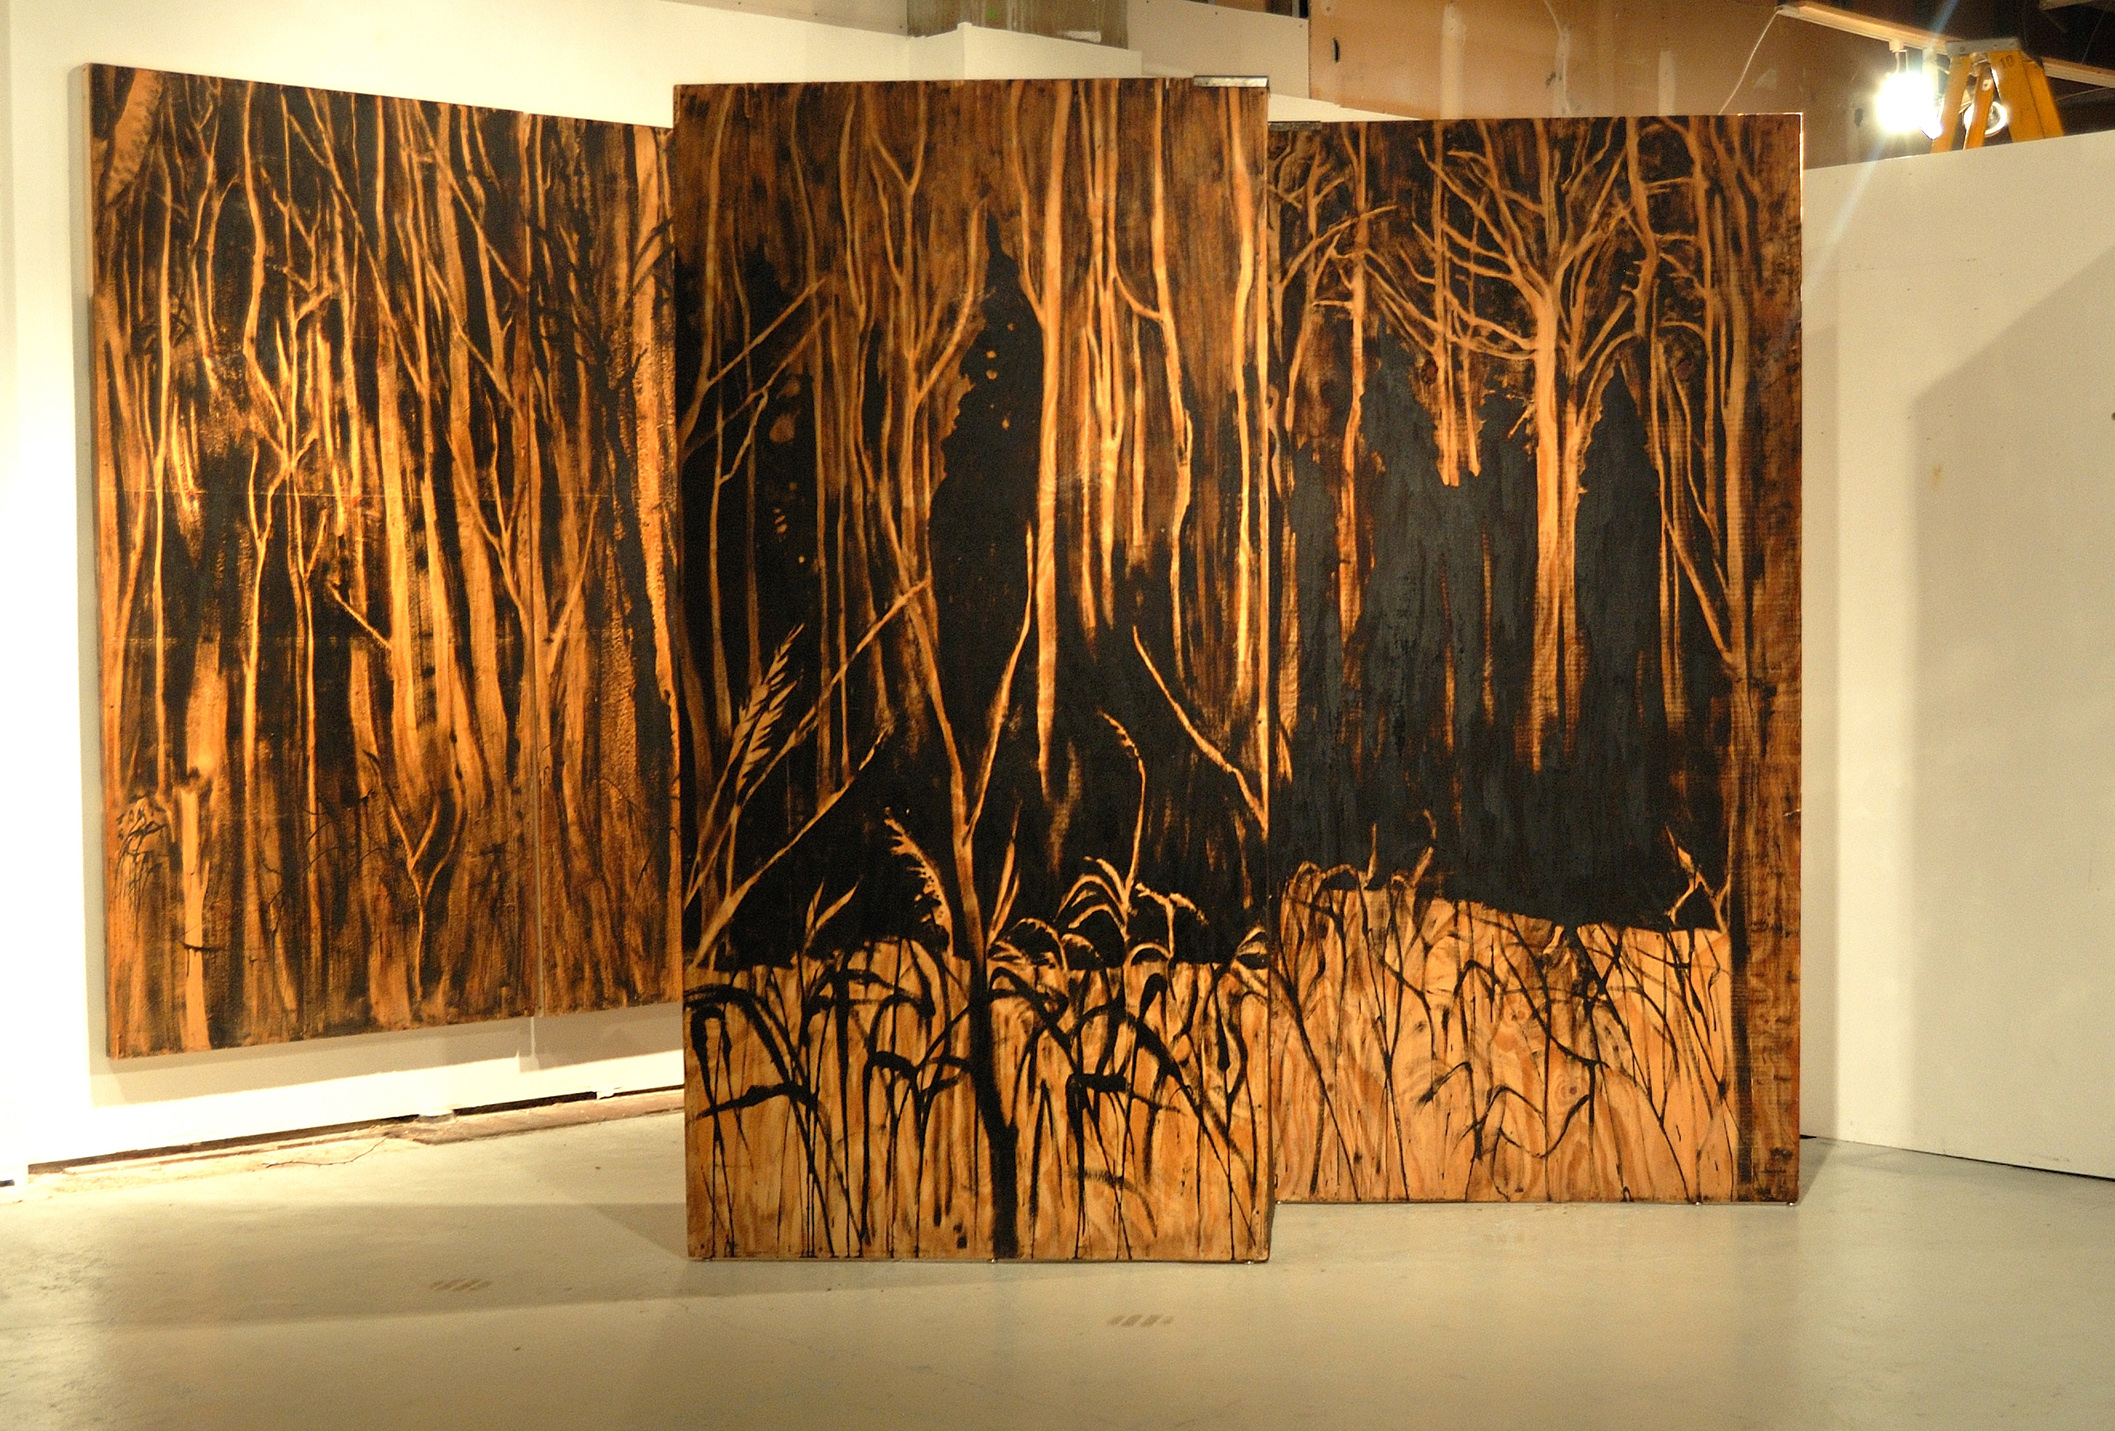 """Living Room"" was a one-person show at Gallery 13, 811 LaSalle St., Minneapolis, MN.  The panels, both freestanding  and wall-hung, are each 4' x 8' plywood, painted in asphaltum. They are part of an ongoing series called ""Forest."""